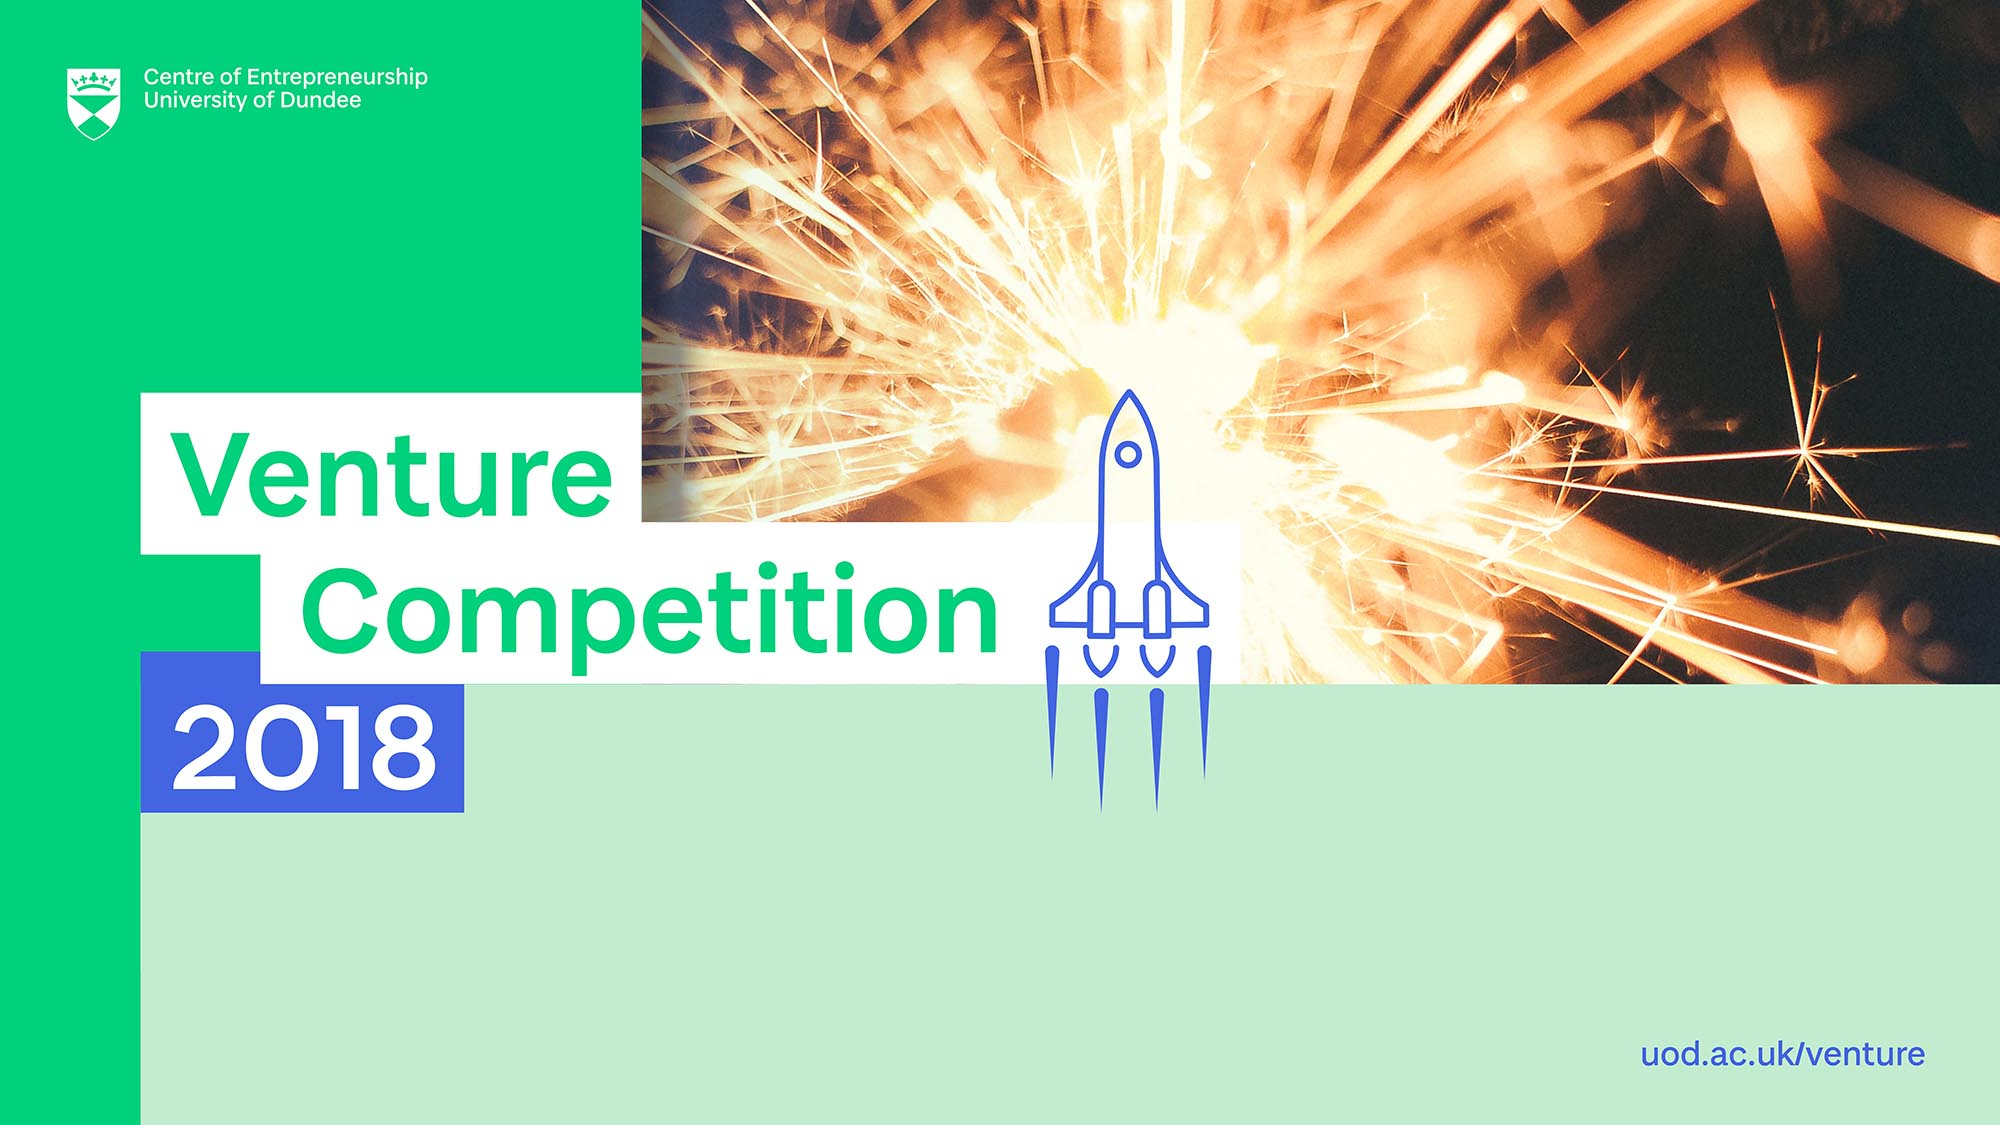 Venture 2018 logo green and white with link to find out more about the competition http://uod.ac.uk/venture